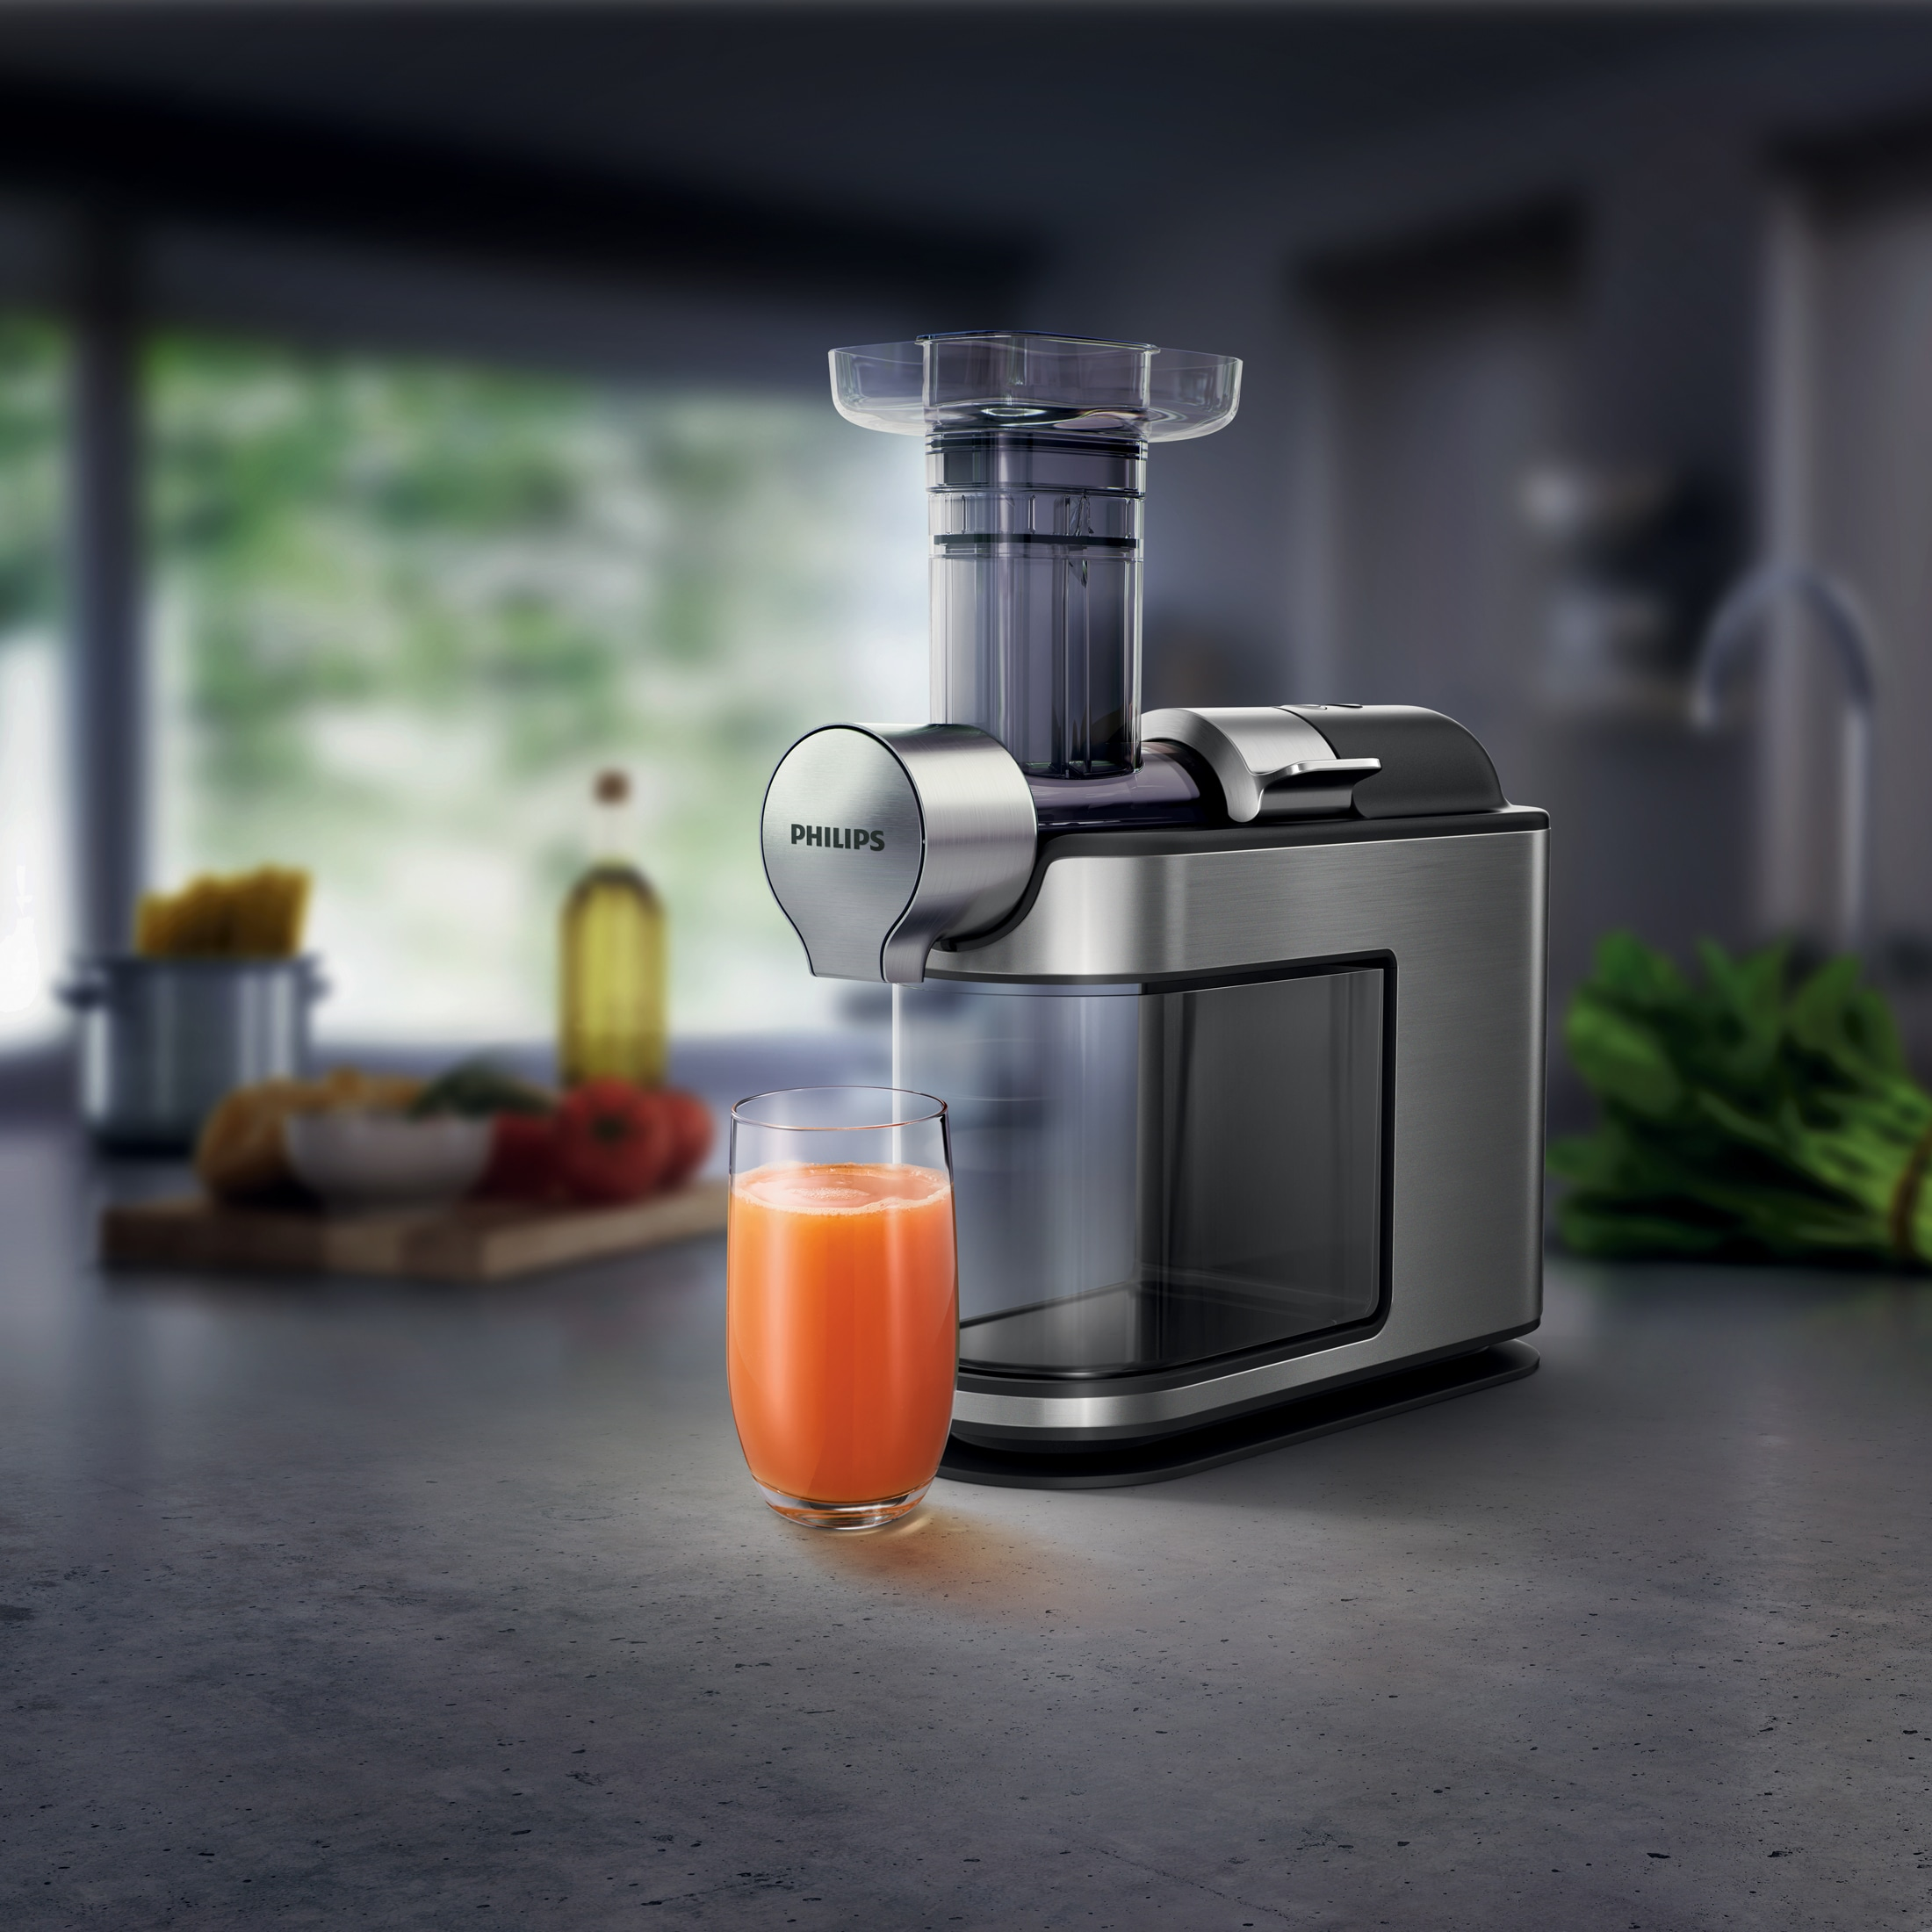 Philips Avance Slow Juicer - News center Philips